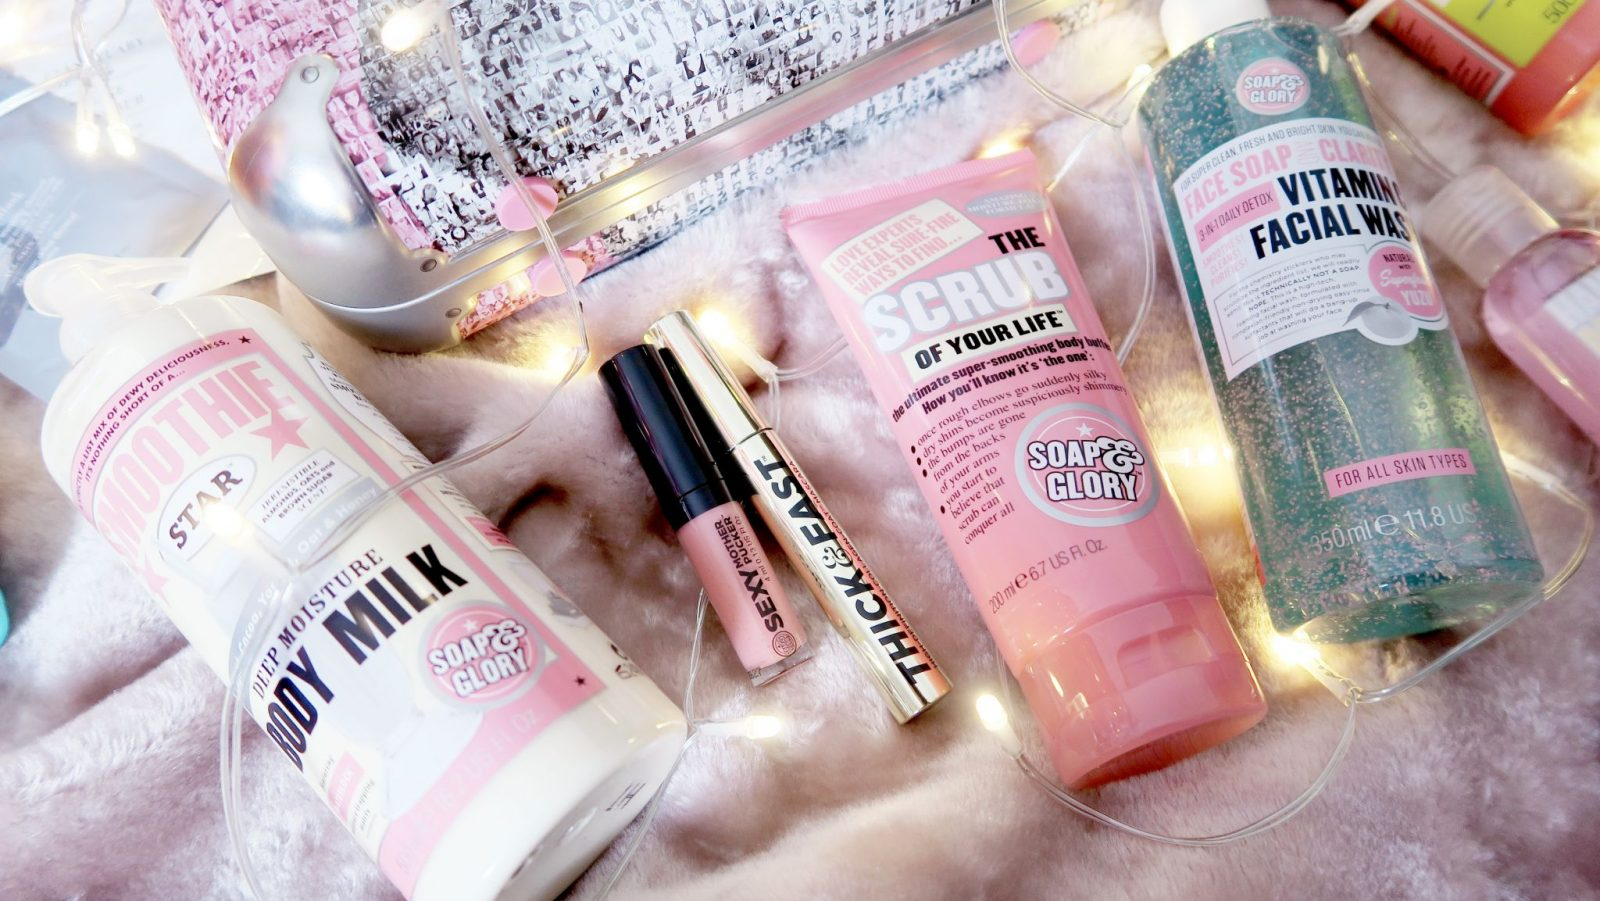 last minute christmas gift, soap and glory, christmas, pink present, skincare gift,